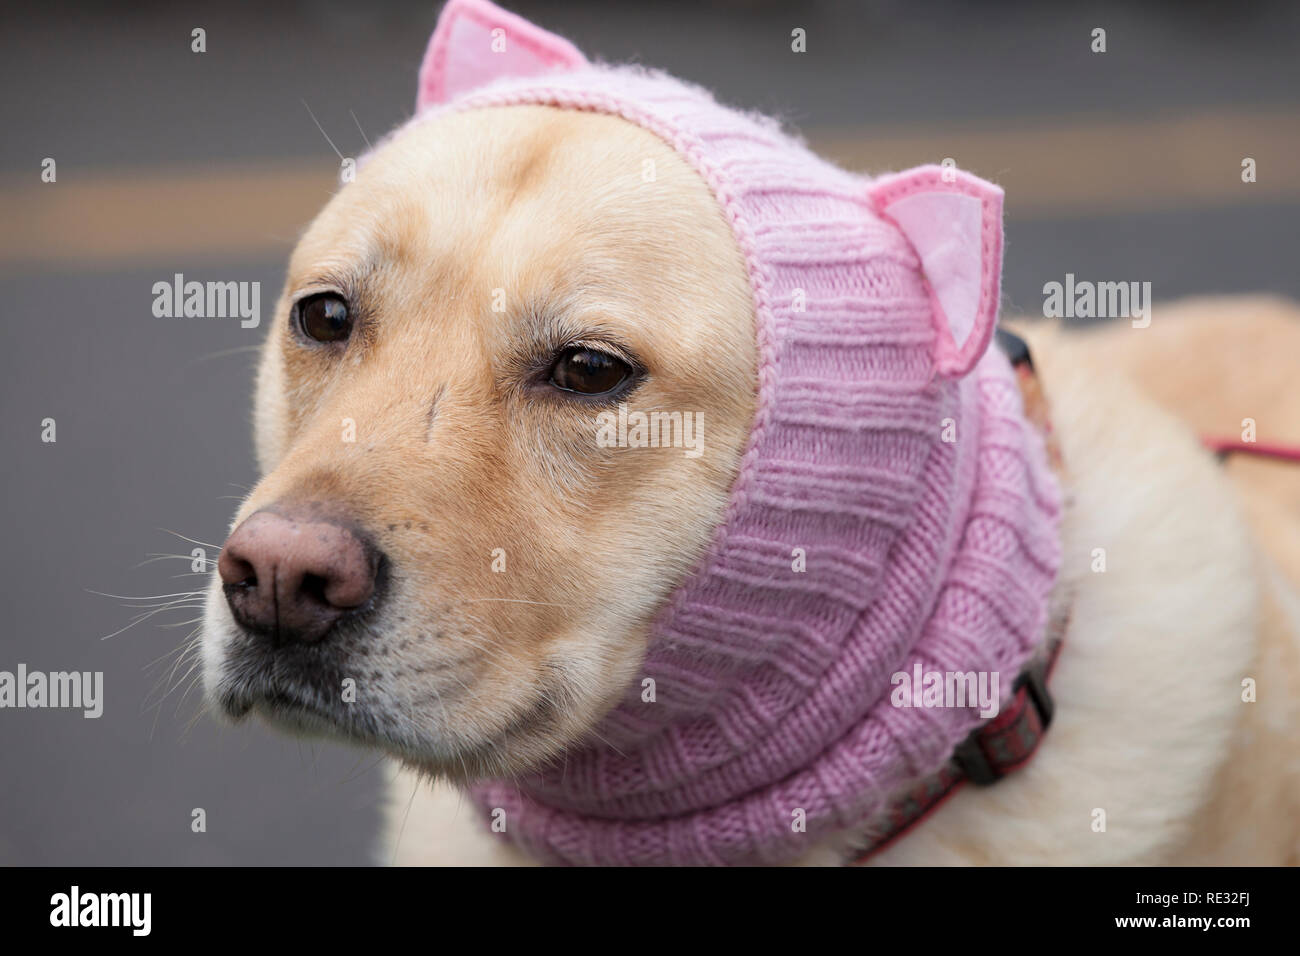 Washington, USA. 19th Jan 2019.  A compliant dog wears a pussyhat at the pre-march rally at Cal Anderson Park for the Womxn's March Seattle 2019. Saturday's March and Rally, organized by Seattle Womxn Marching Forward in collaboration with MLK Day organizers, will be followed on Sunday by a day of action and Monday MLK Day events honoring Martin Luther King Jr. Sunday's Womxn Act on Seattle is a citywide day of learning, supporting, sharing, and acting on behalf of nonprofit organizations, grassroots and social justice groups in Seattle. - Stock Image